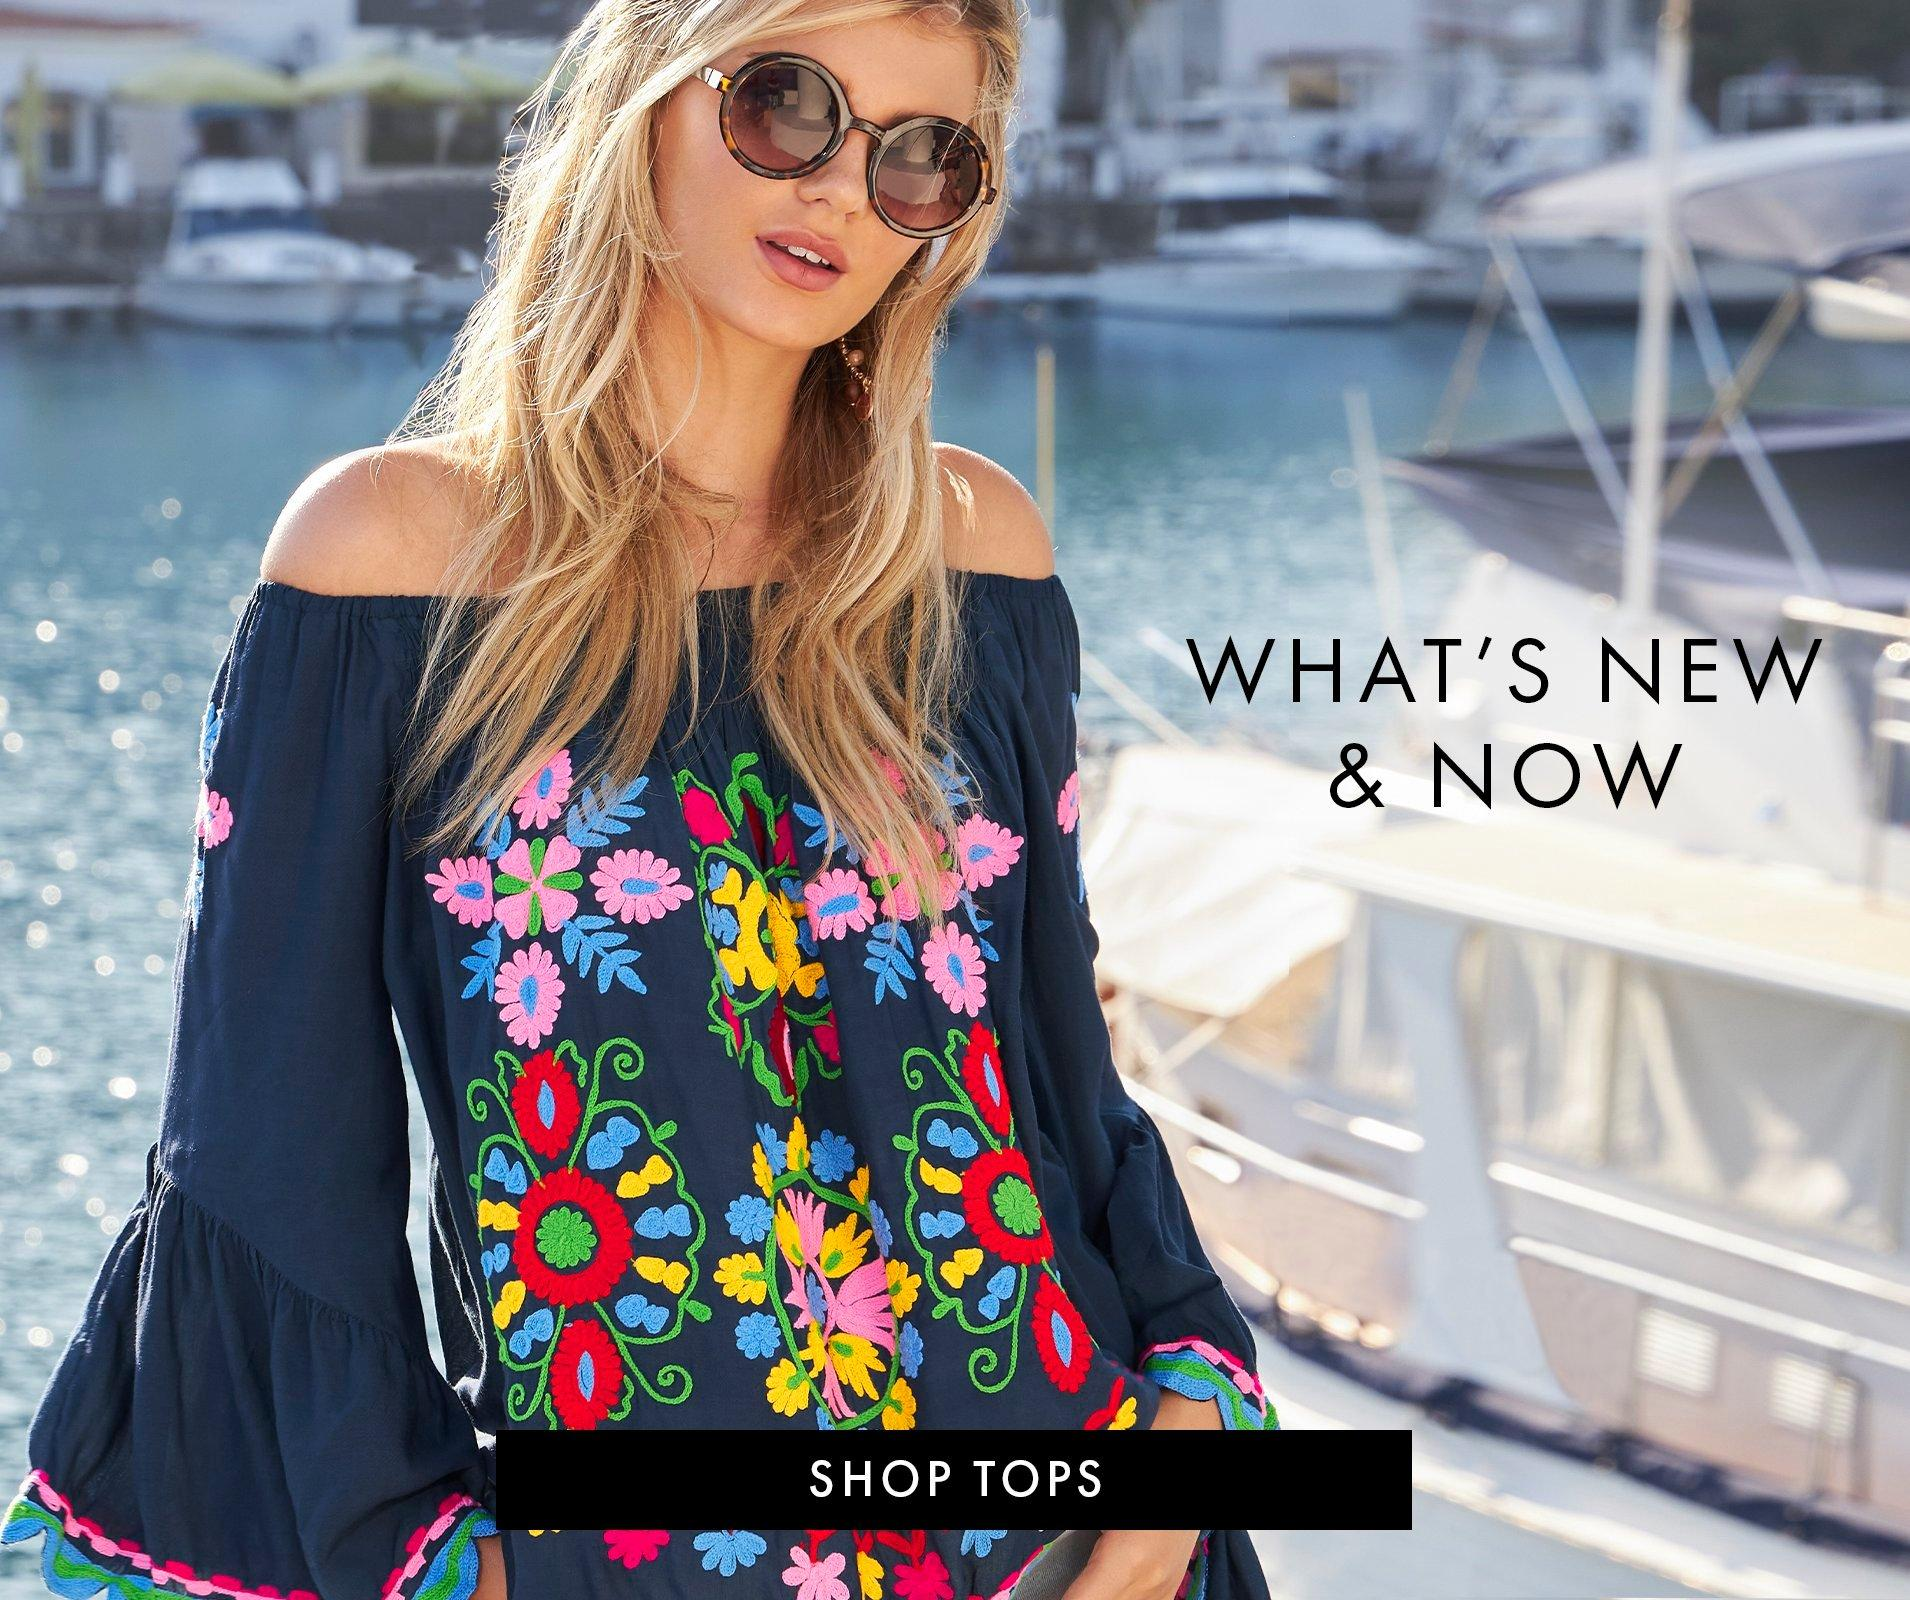 model wearing a navy off-the-shoulder flower embroidered flare-sleeve top and sunglasses.